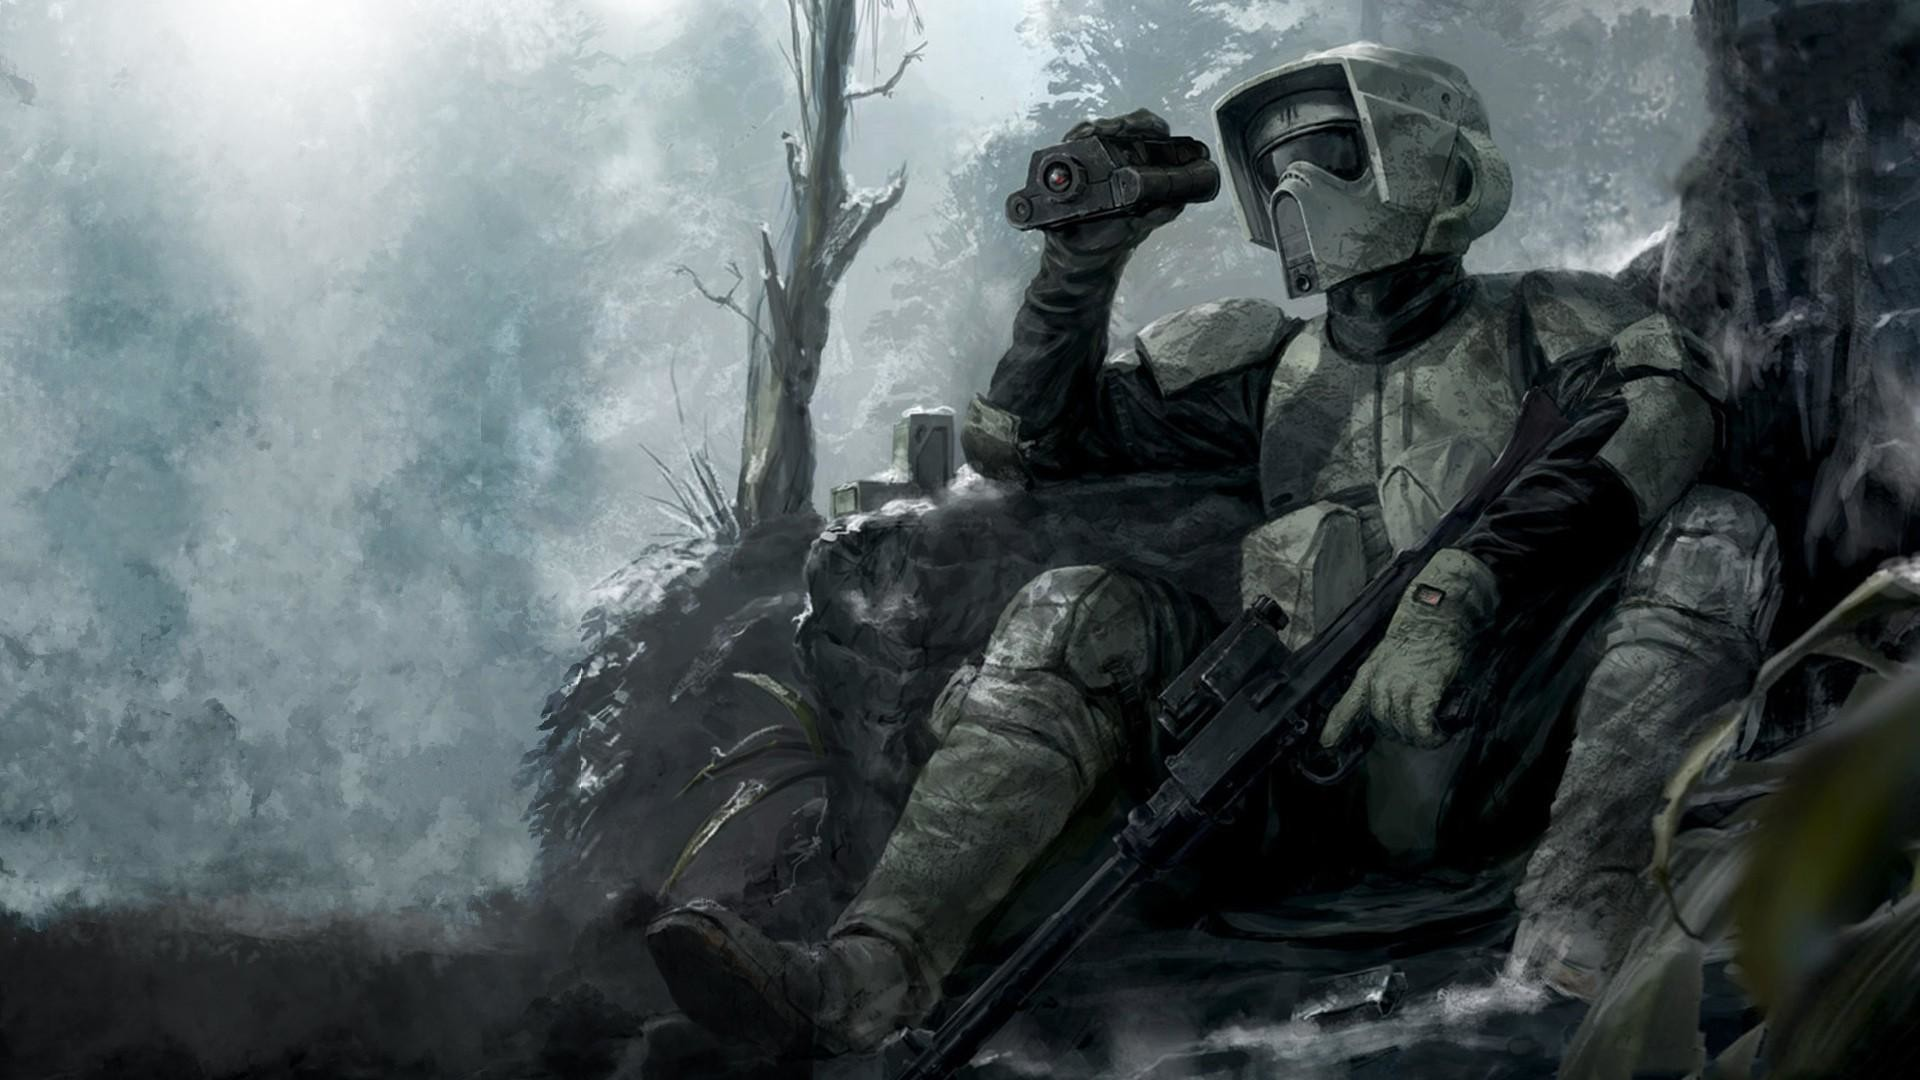 Military Hd Wallpapers 1080p 85 Images